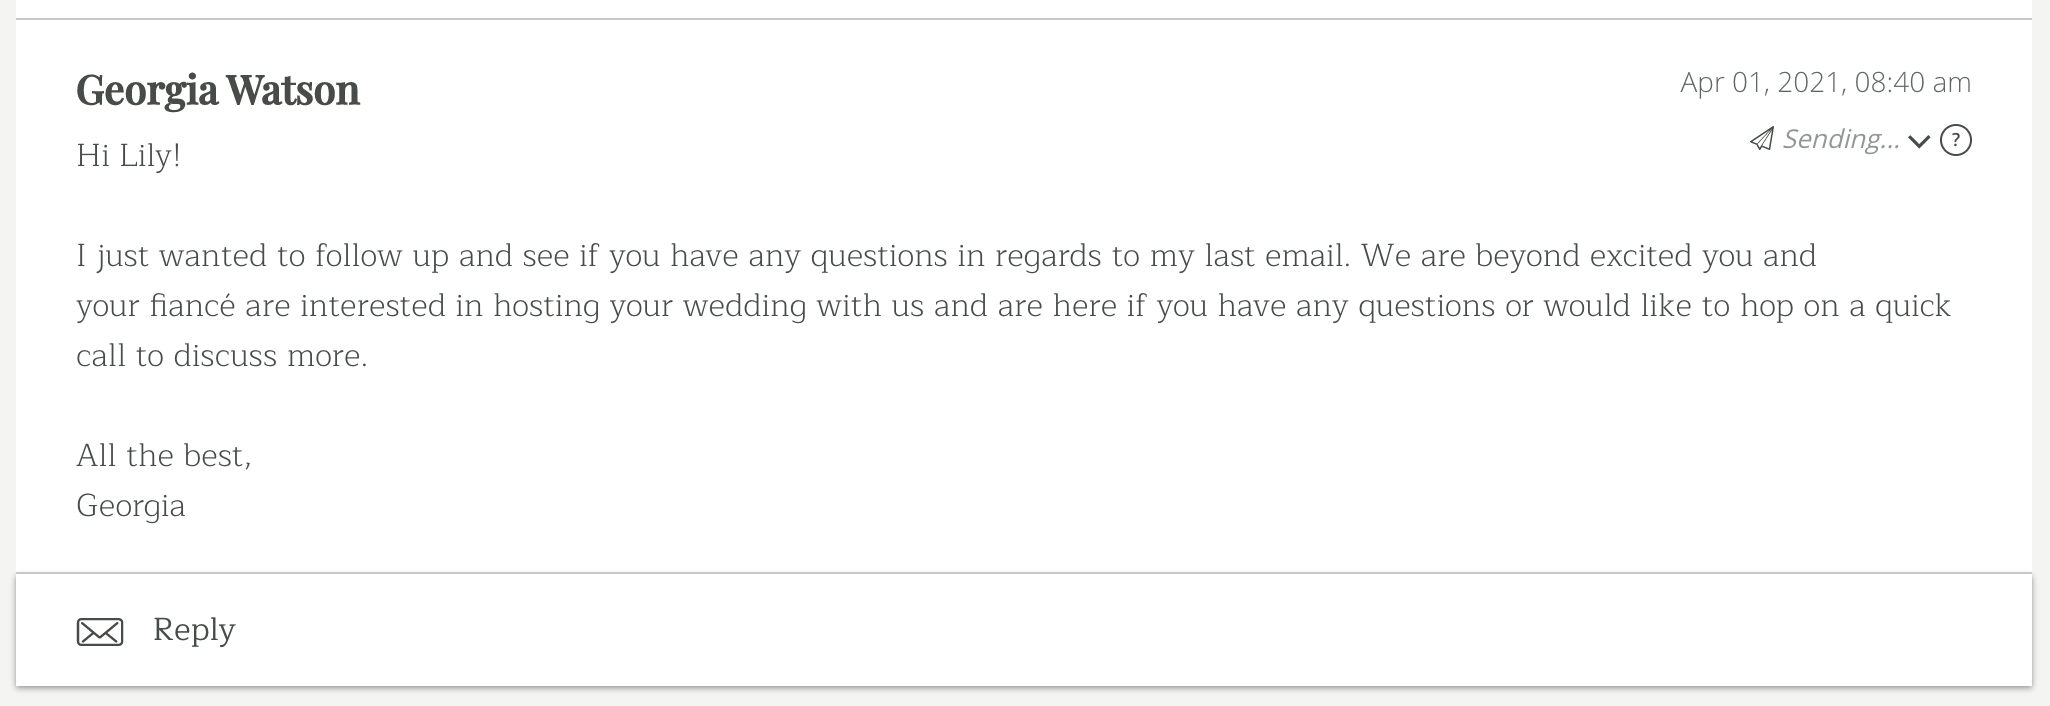 I just wanted to follow up and see if you have any questions in regards to my last email. We are beyond excited you and your fiancé are interested in hosting your wedding with us and are here if you have any questions or would like to hop on a quick call to discuss more.